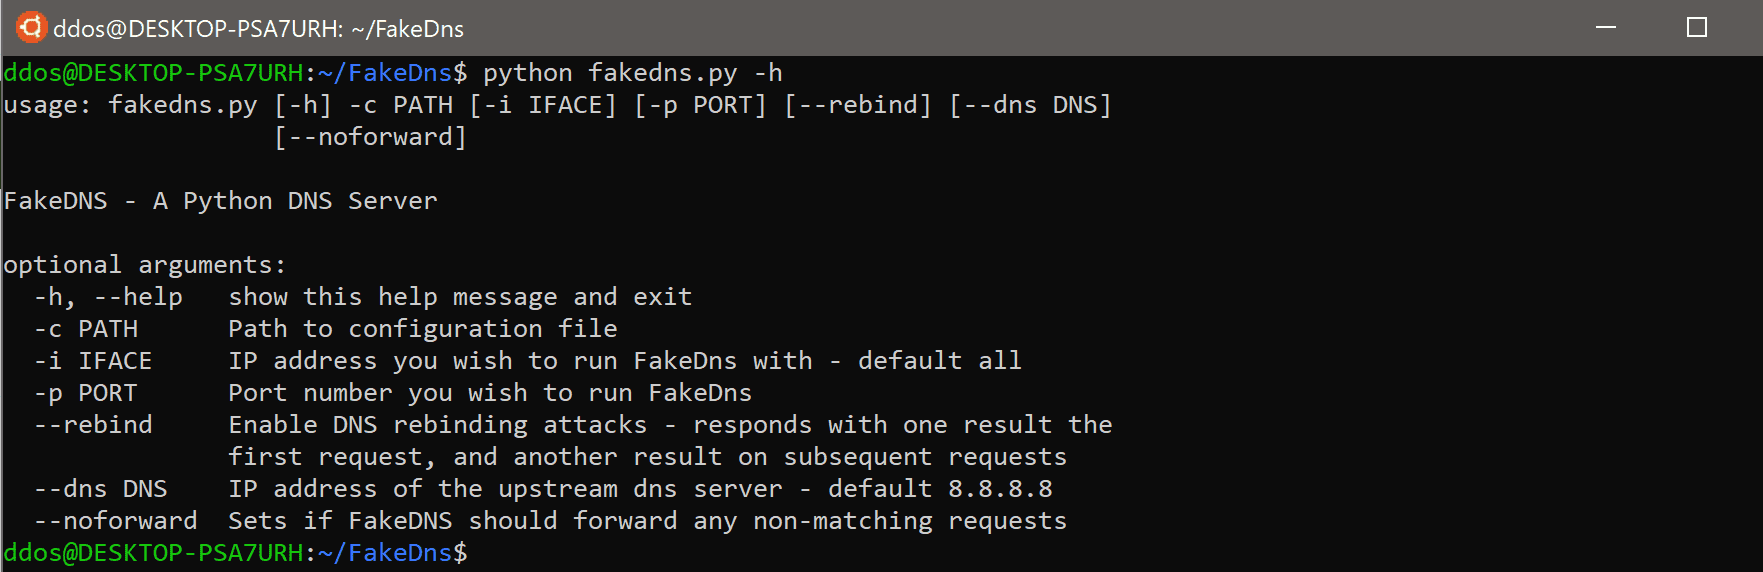 FakeDns: python MITM DNS server with support for DNS